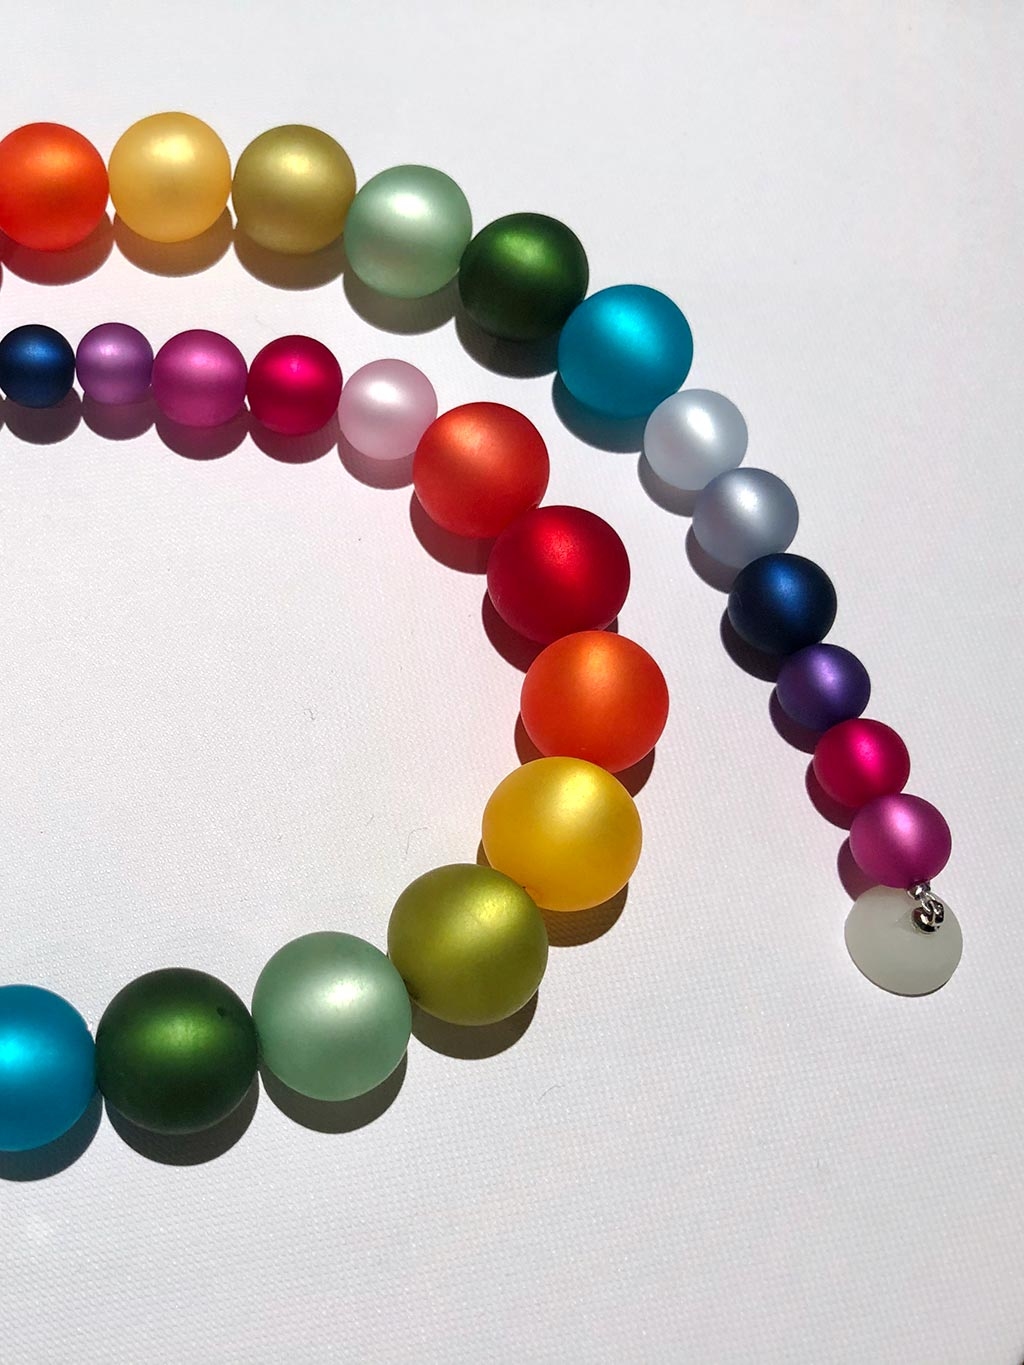 Rainbow Necklace - Celebrate Community and Your Unique Radiance (Shipping in August 2020*)